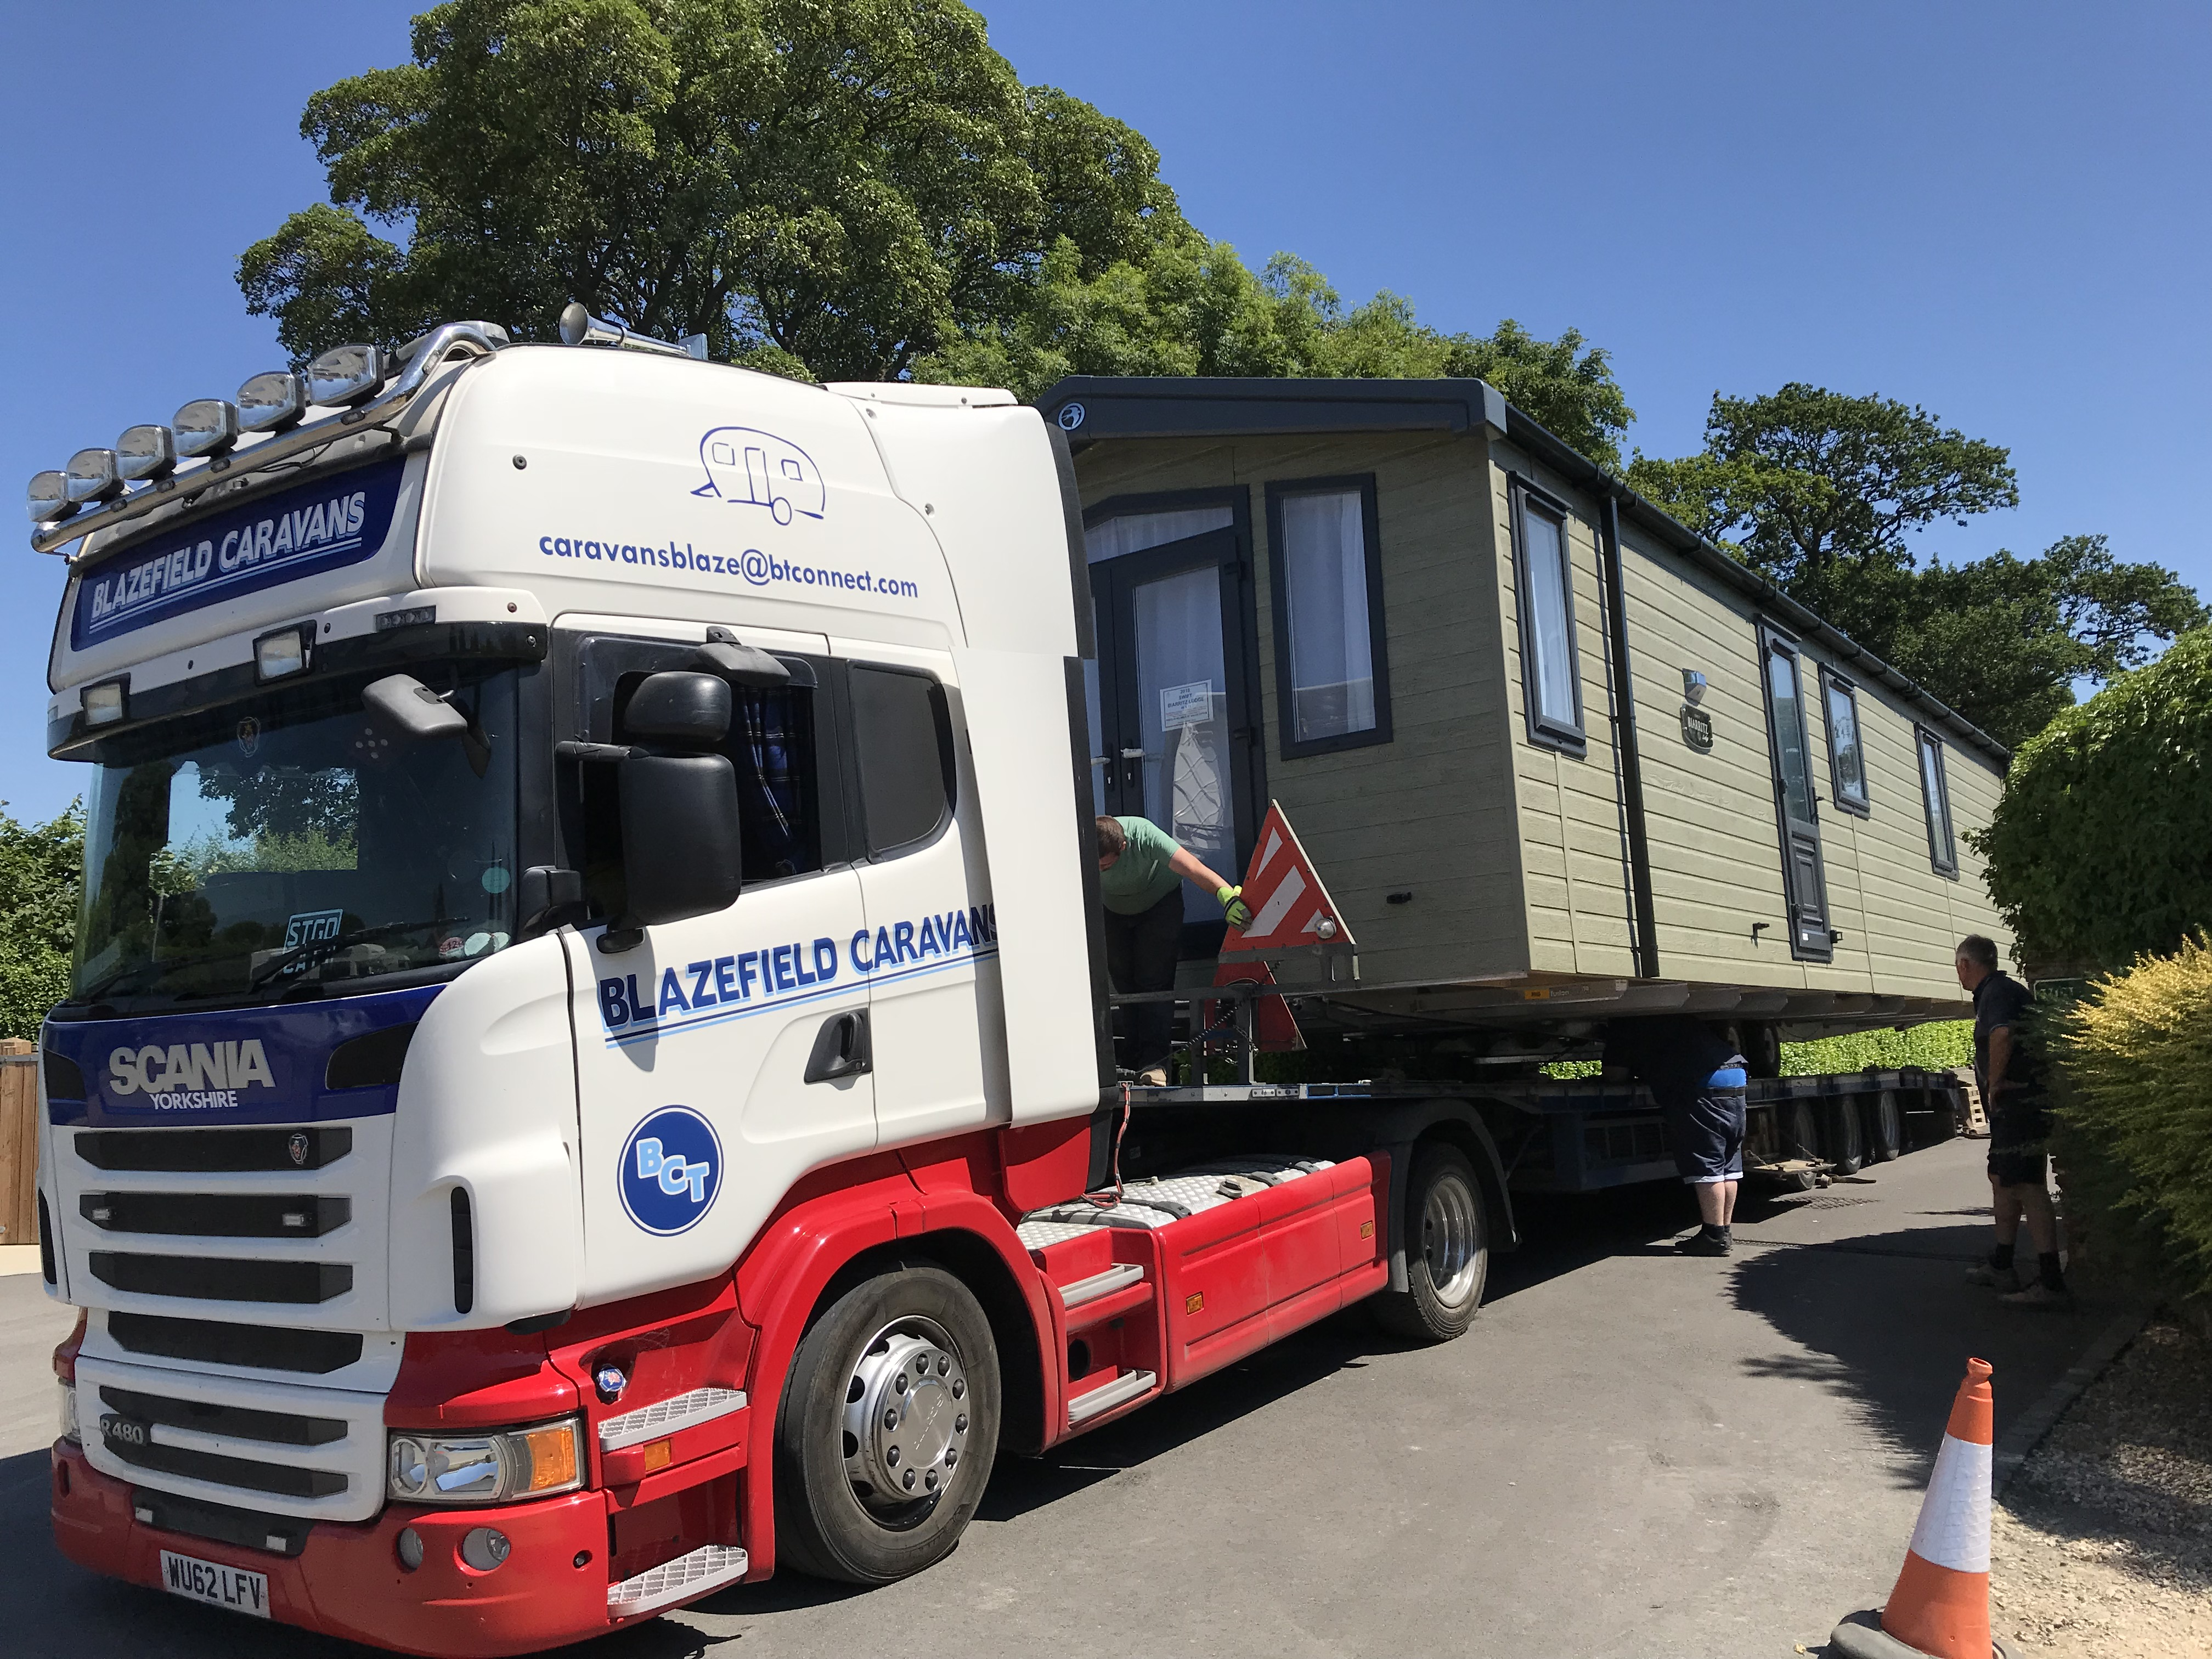 1st July – Another new arrival...this time a Holiday Home!